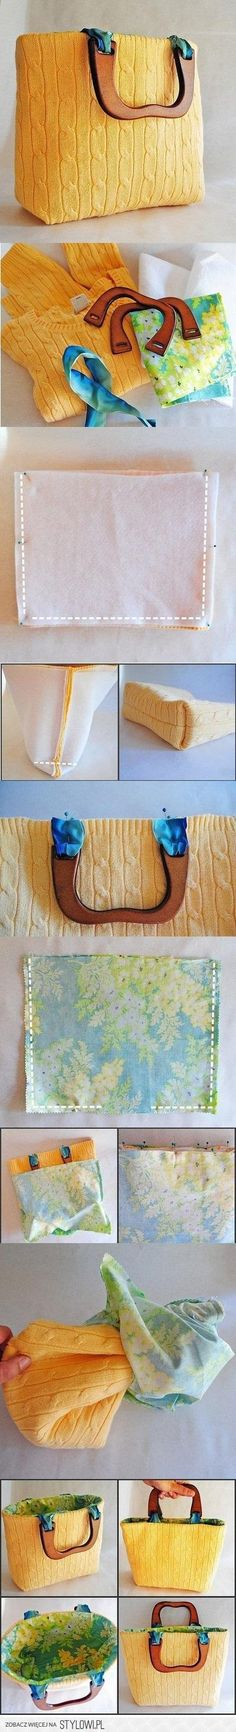 Picnic ready carry-all repurposed out of an old sweater. Simply adorable. :)